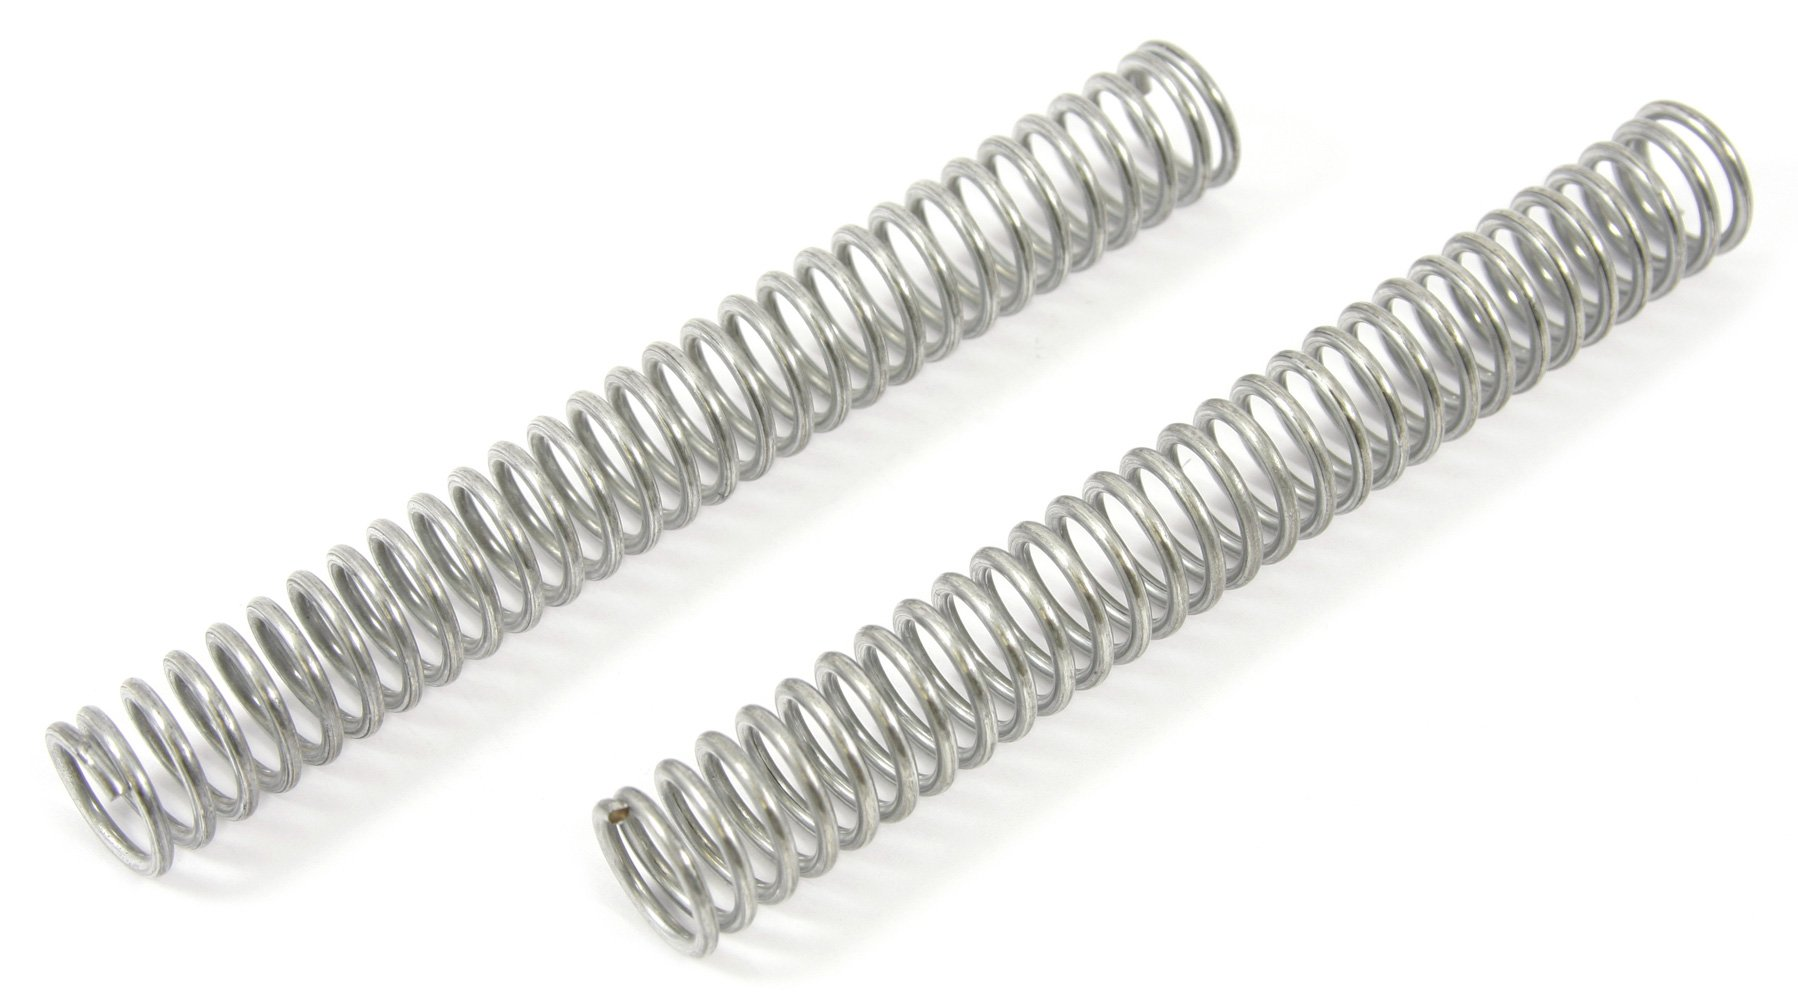 Forney 72664 Wire Spring Compression, 3/4-Inch-by-6-Inch-by-.091-Inch, 2-Pack